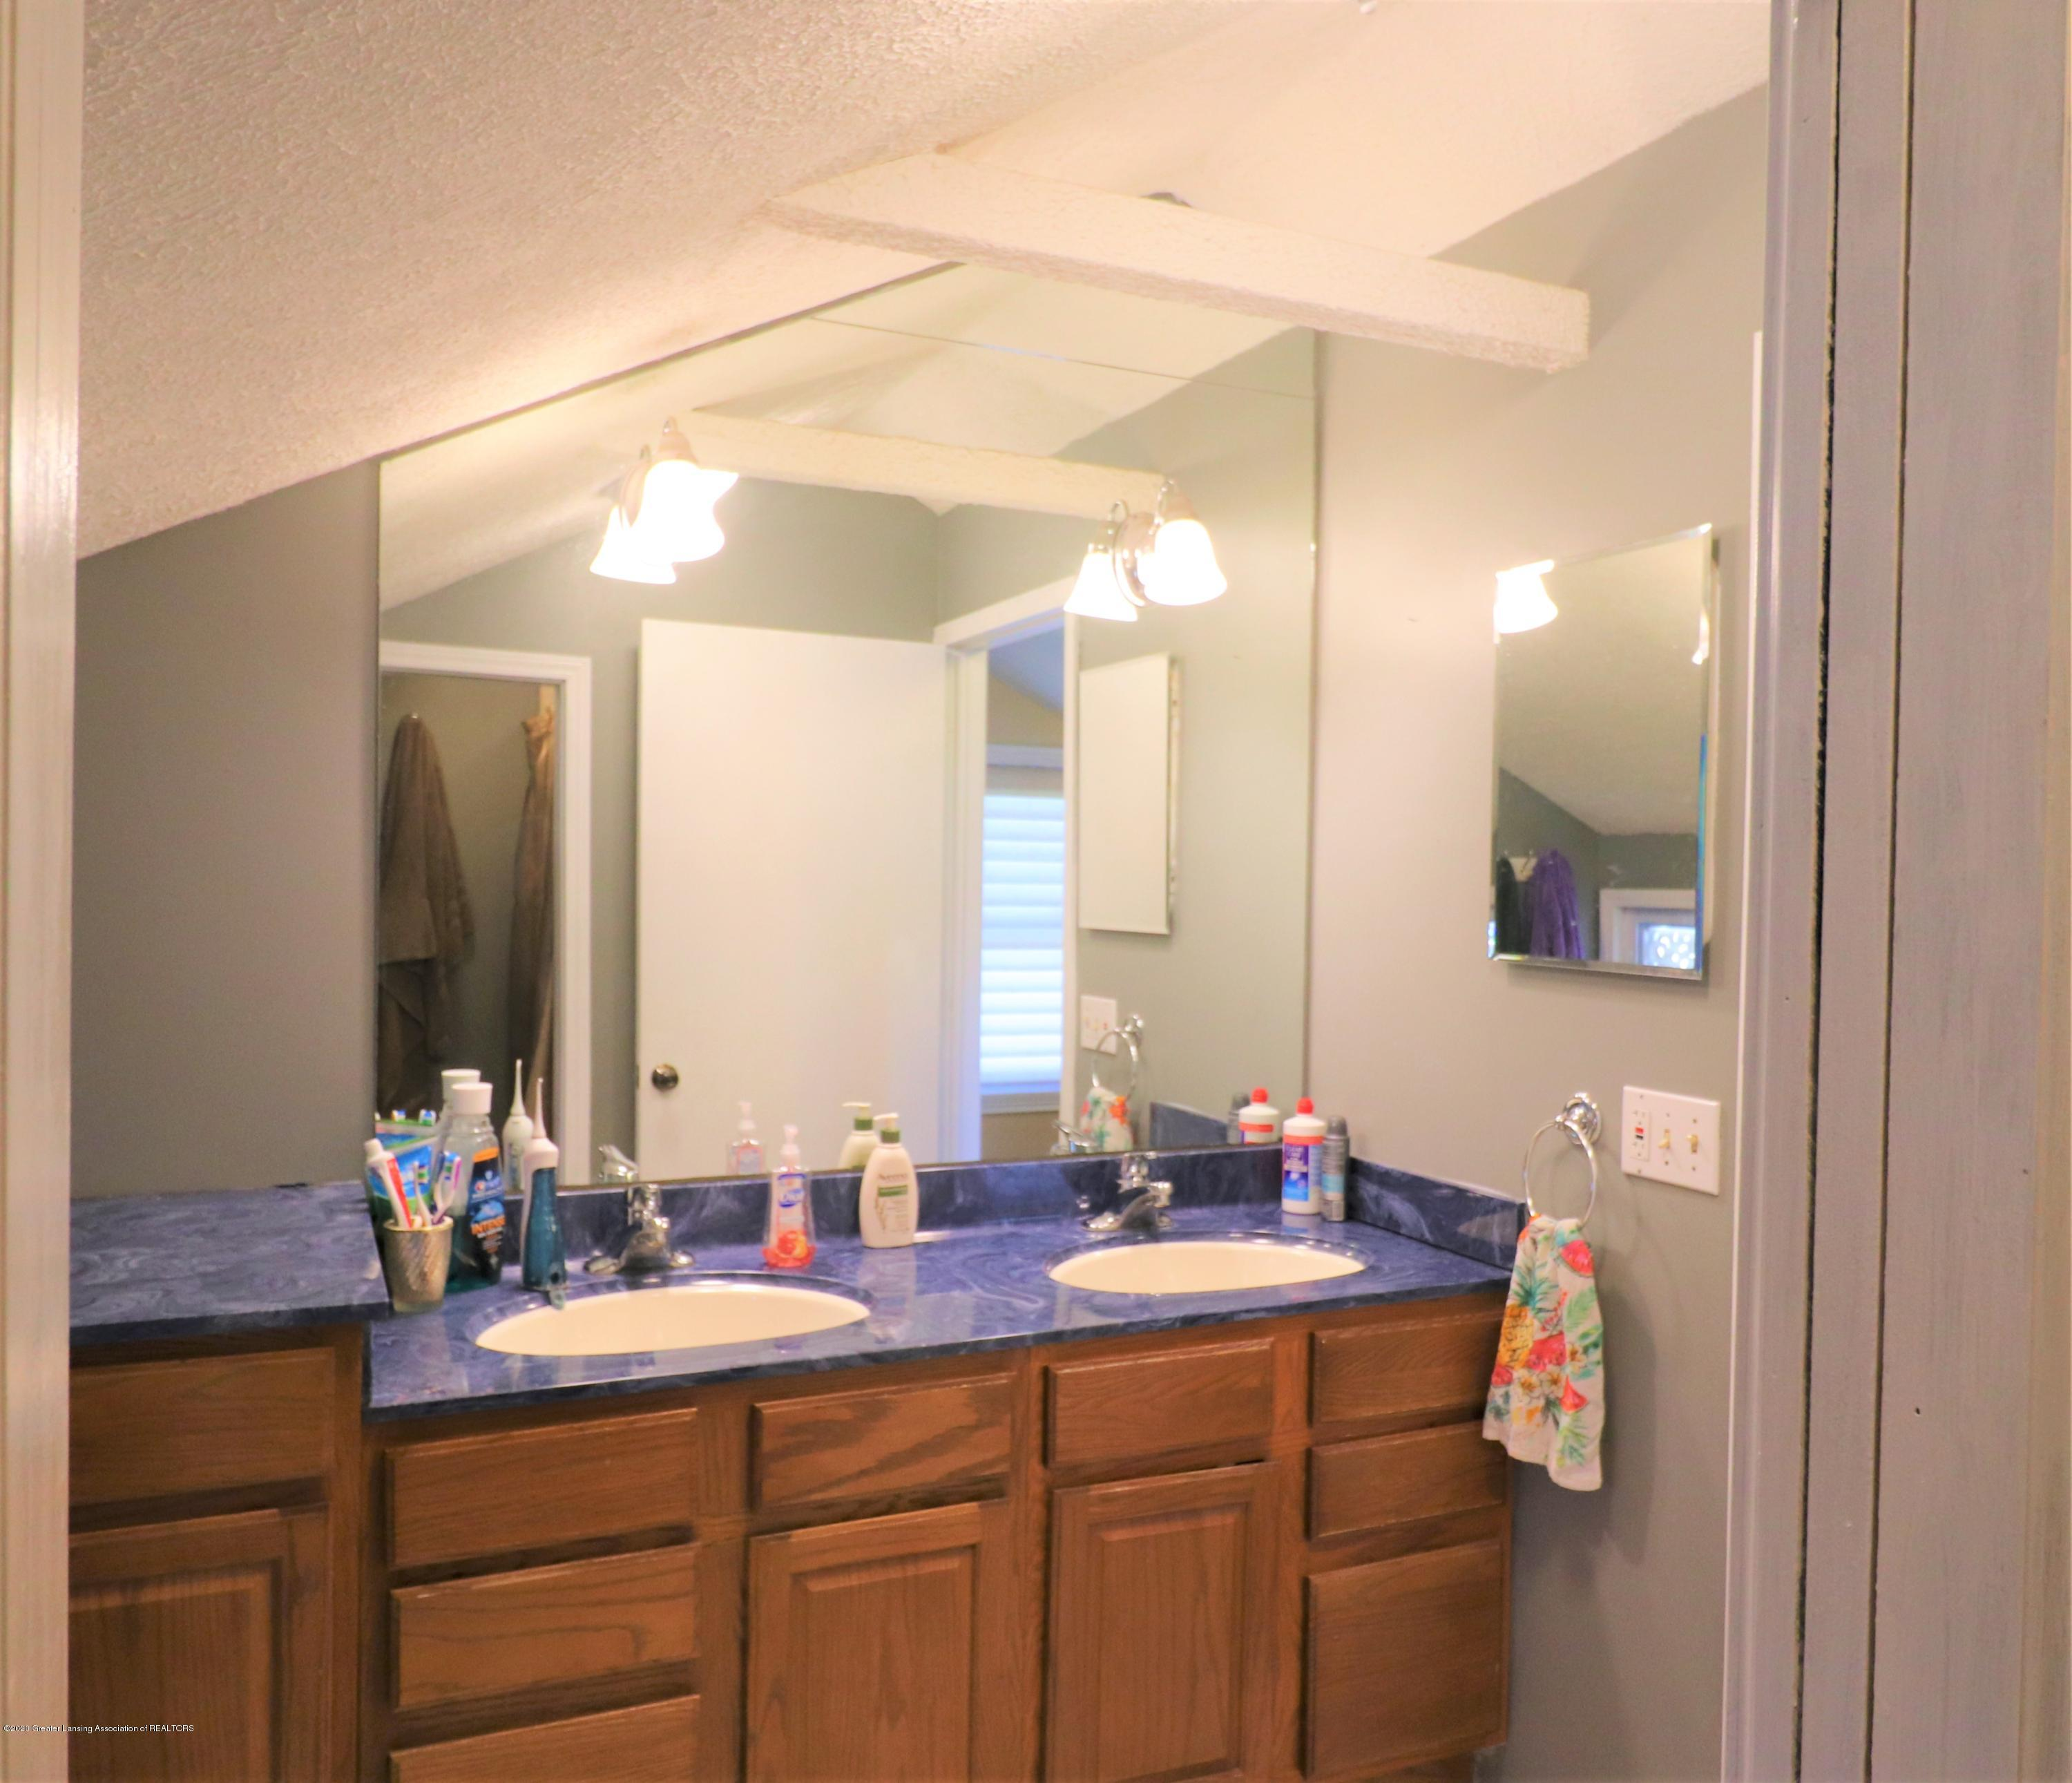 223 N Washington St - 30 Master Dual Vanity - 30